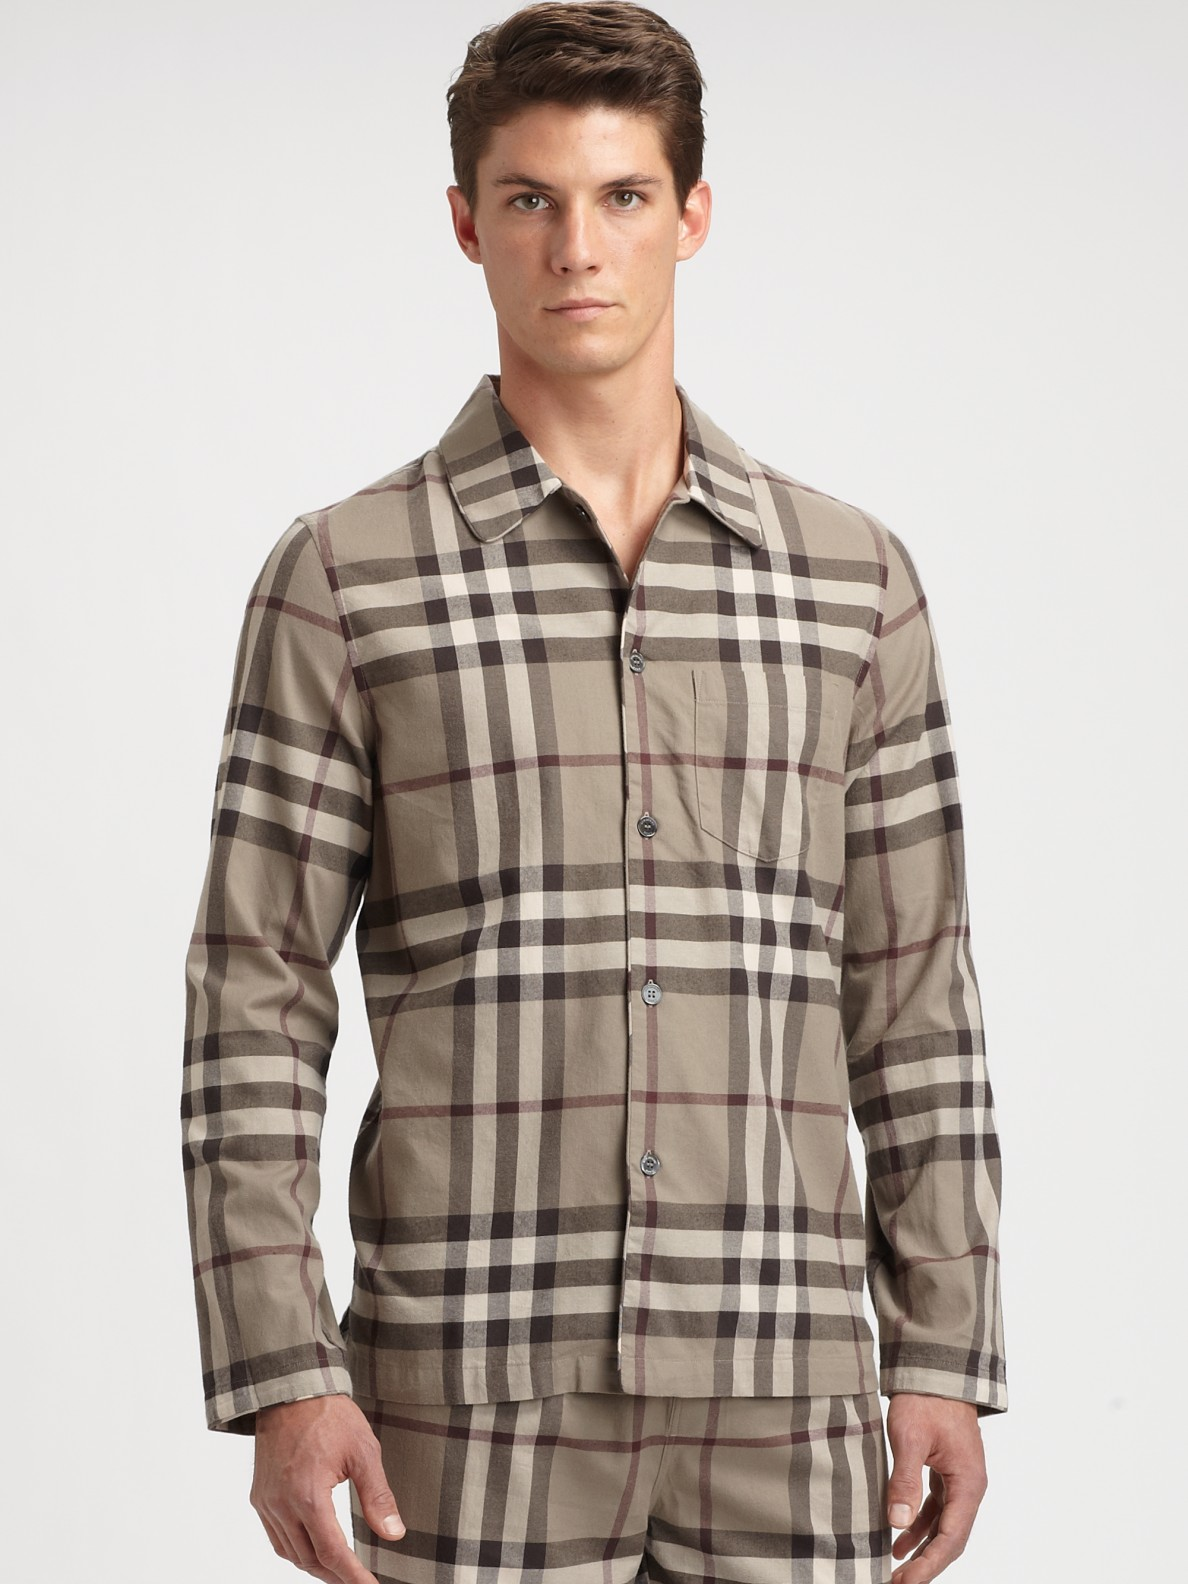 Lyst - Burberry Check Pajama Set in Brown for Men